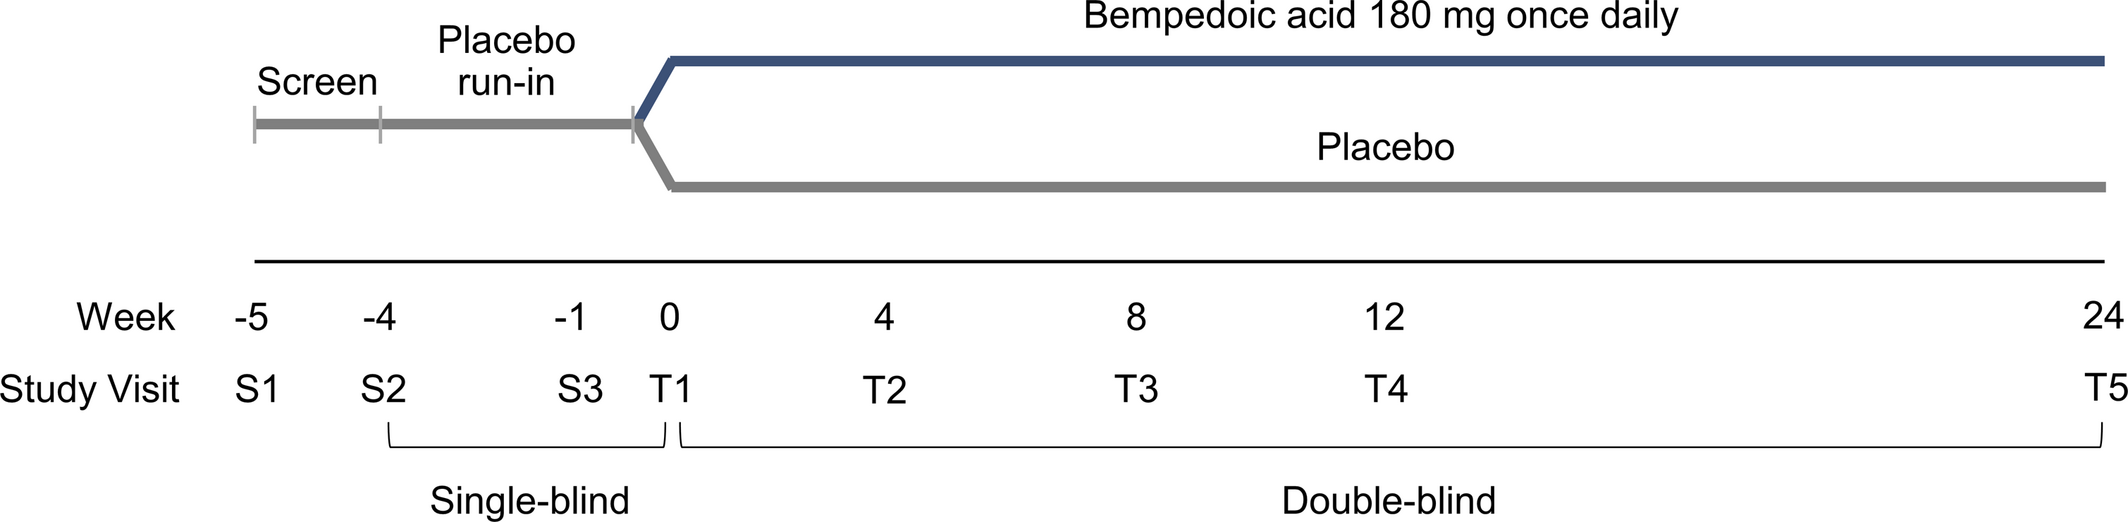 Efficacy and Safety of Bempedoic Acid in Patients With